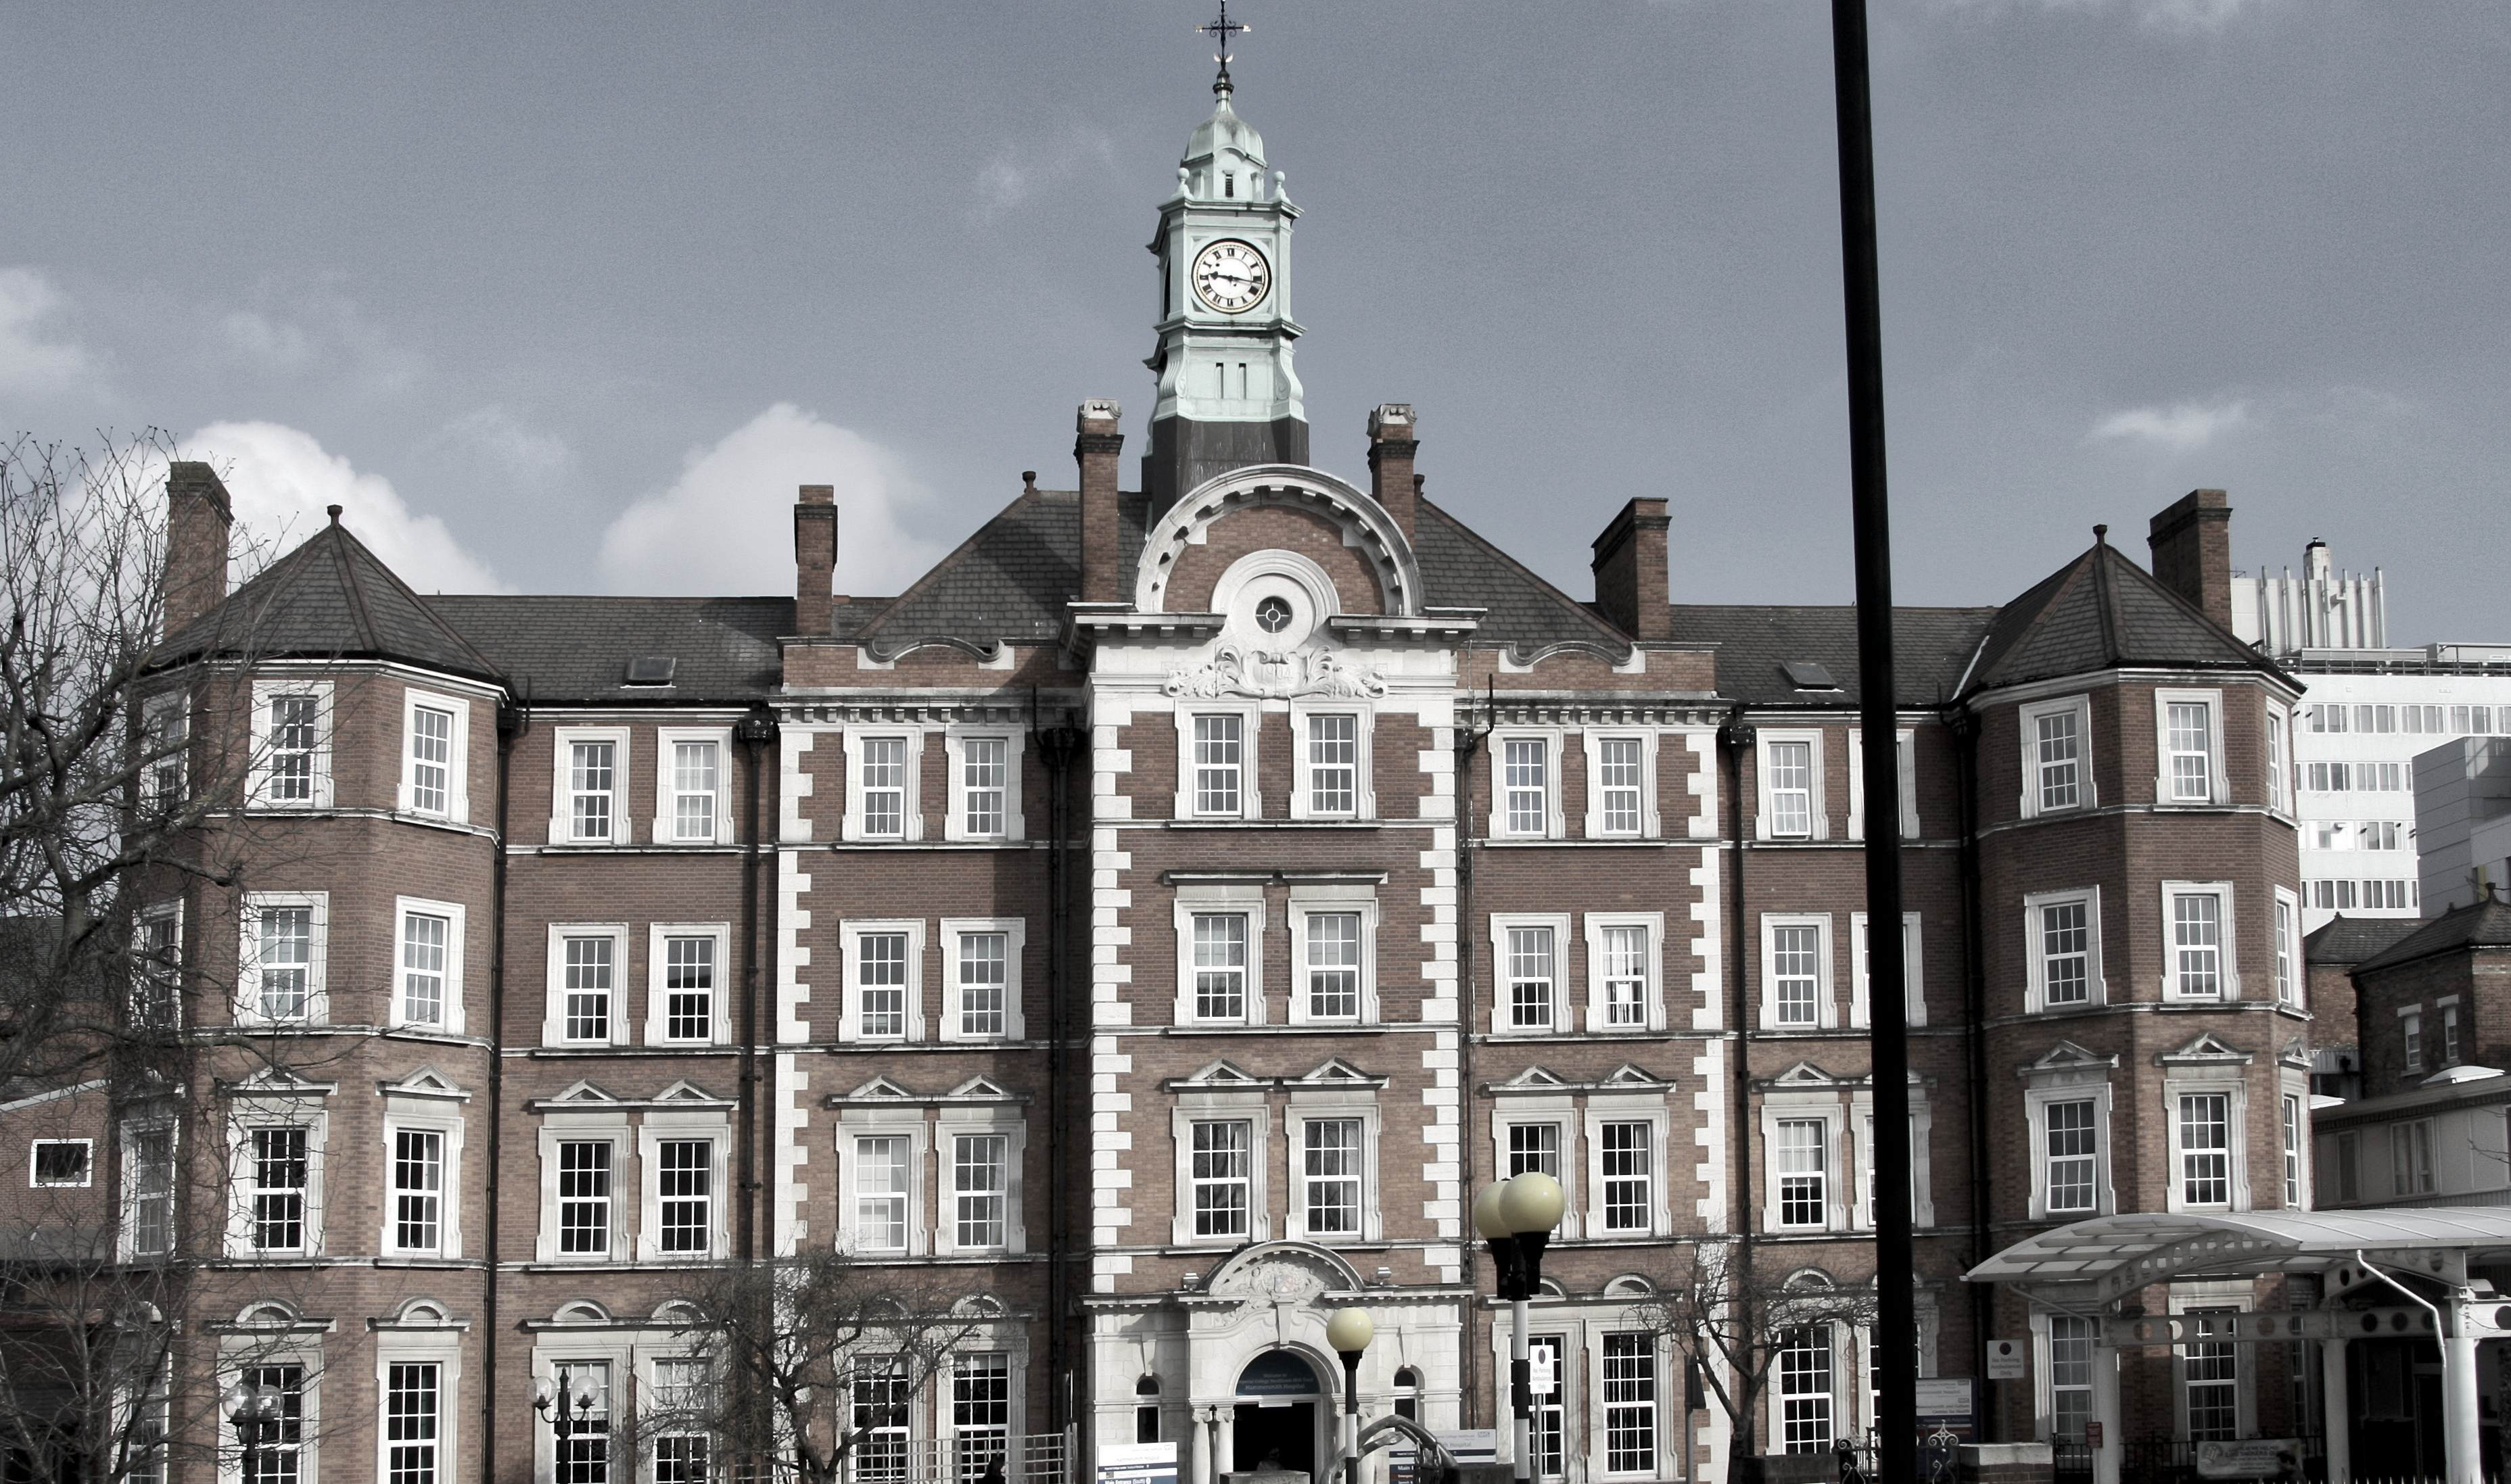 The Hammersmith Hospital is a premier Heart hospital in the UK